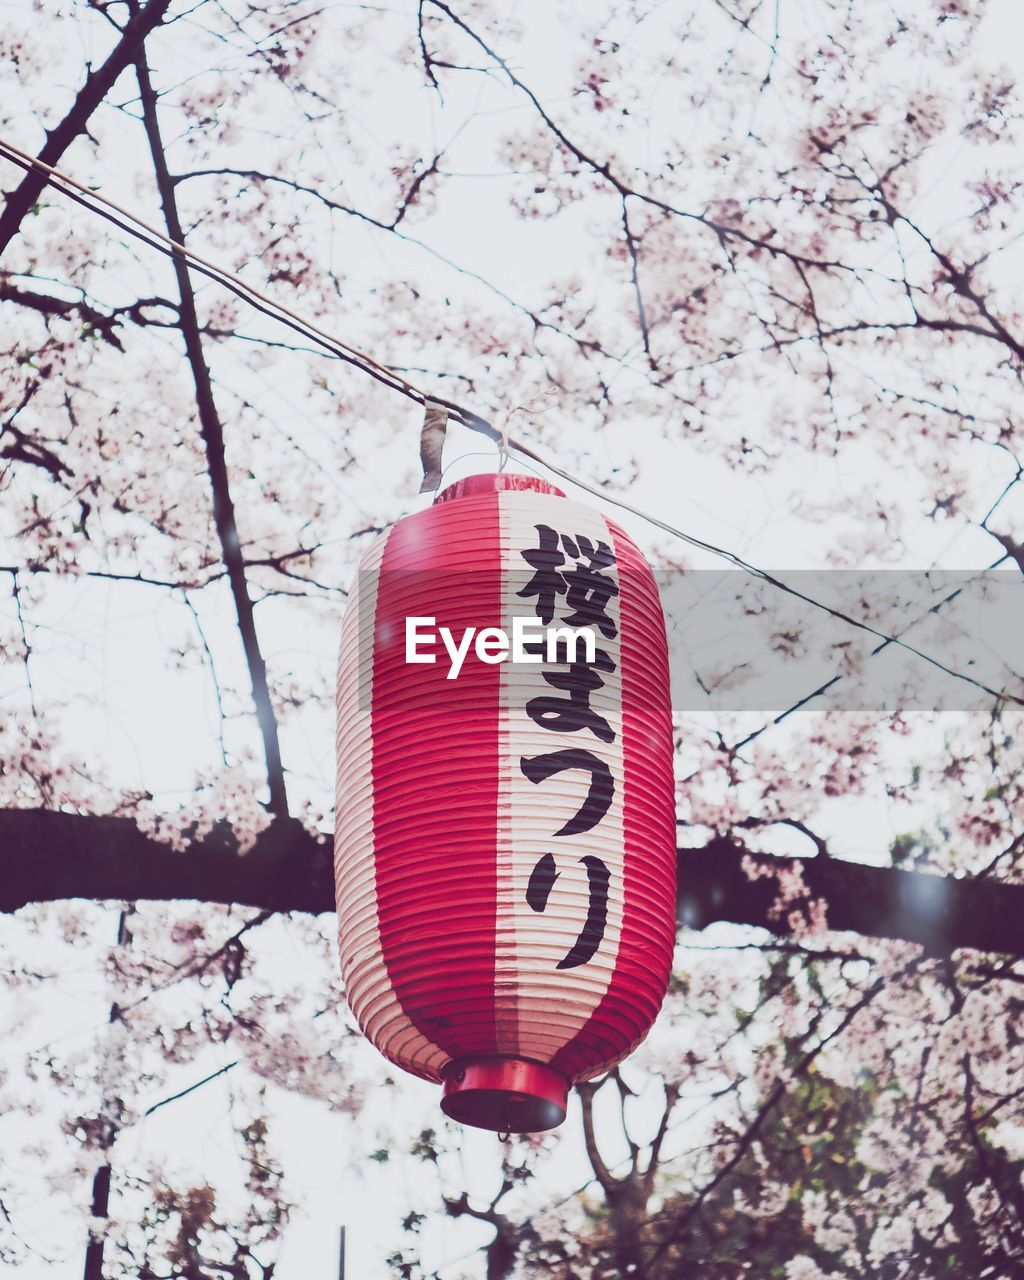 CLOSE-UP OF RED CHERRY BLOSSOM HANGING FROM TREE